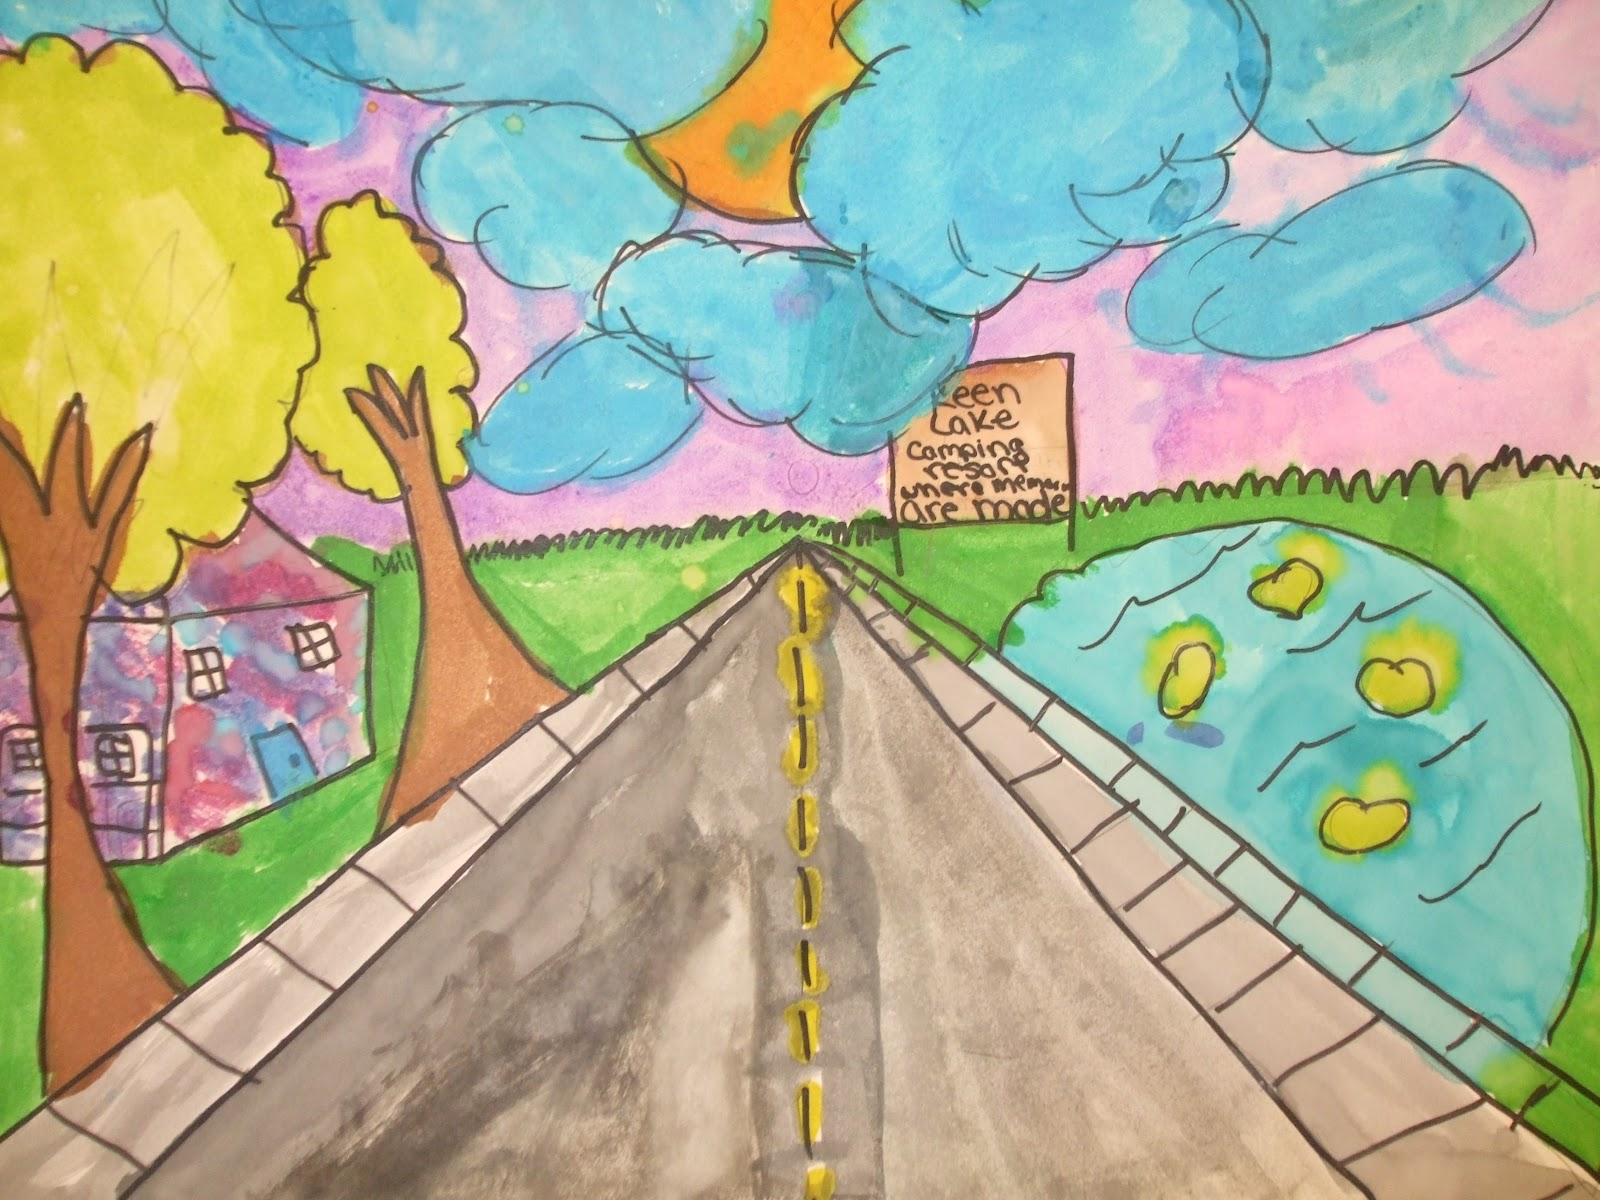 Rainbow Skies & Dragonflies: 1 Point Perspective - 5th Grade